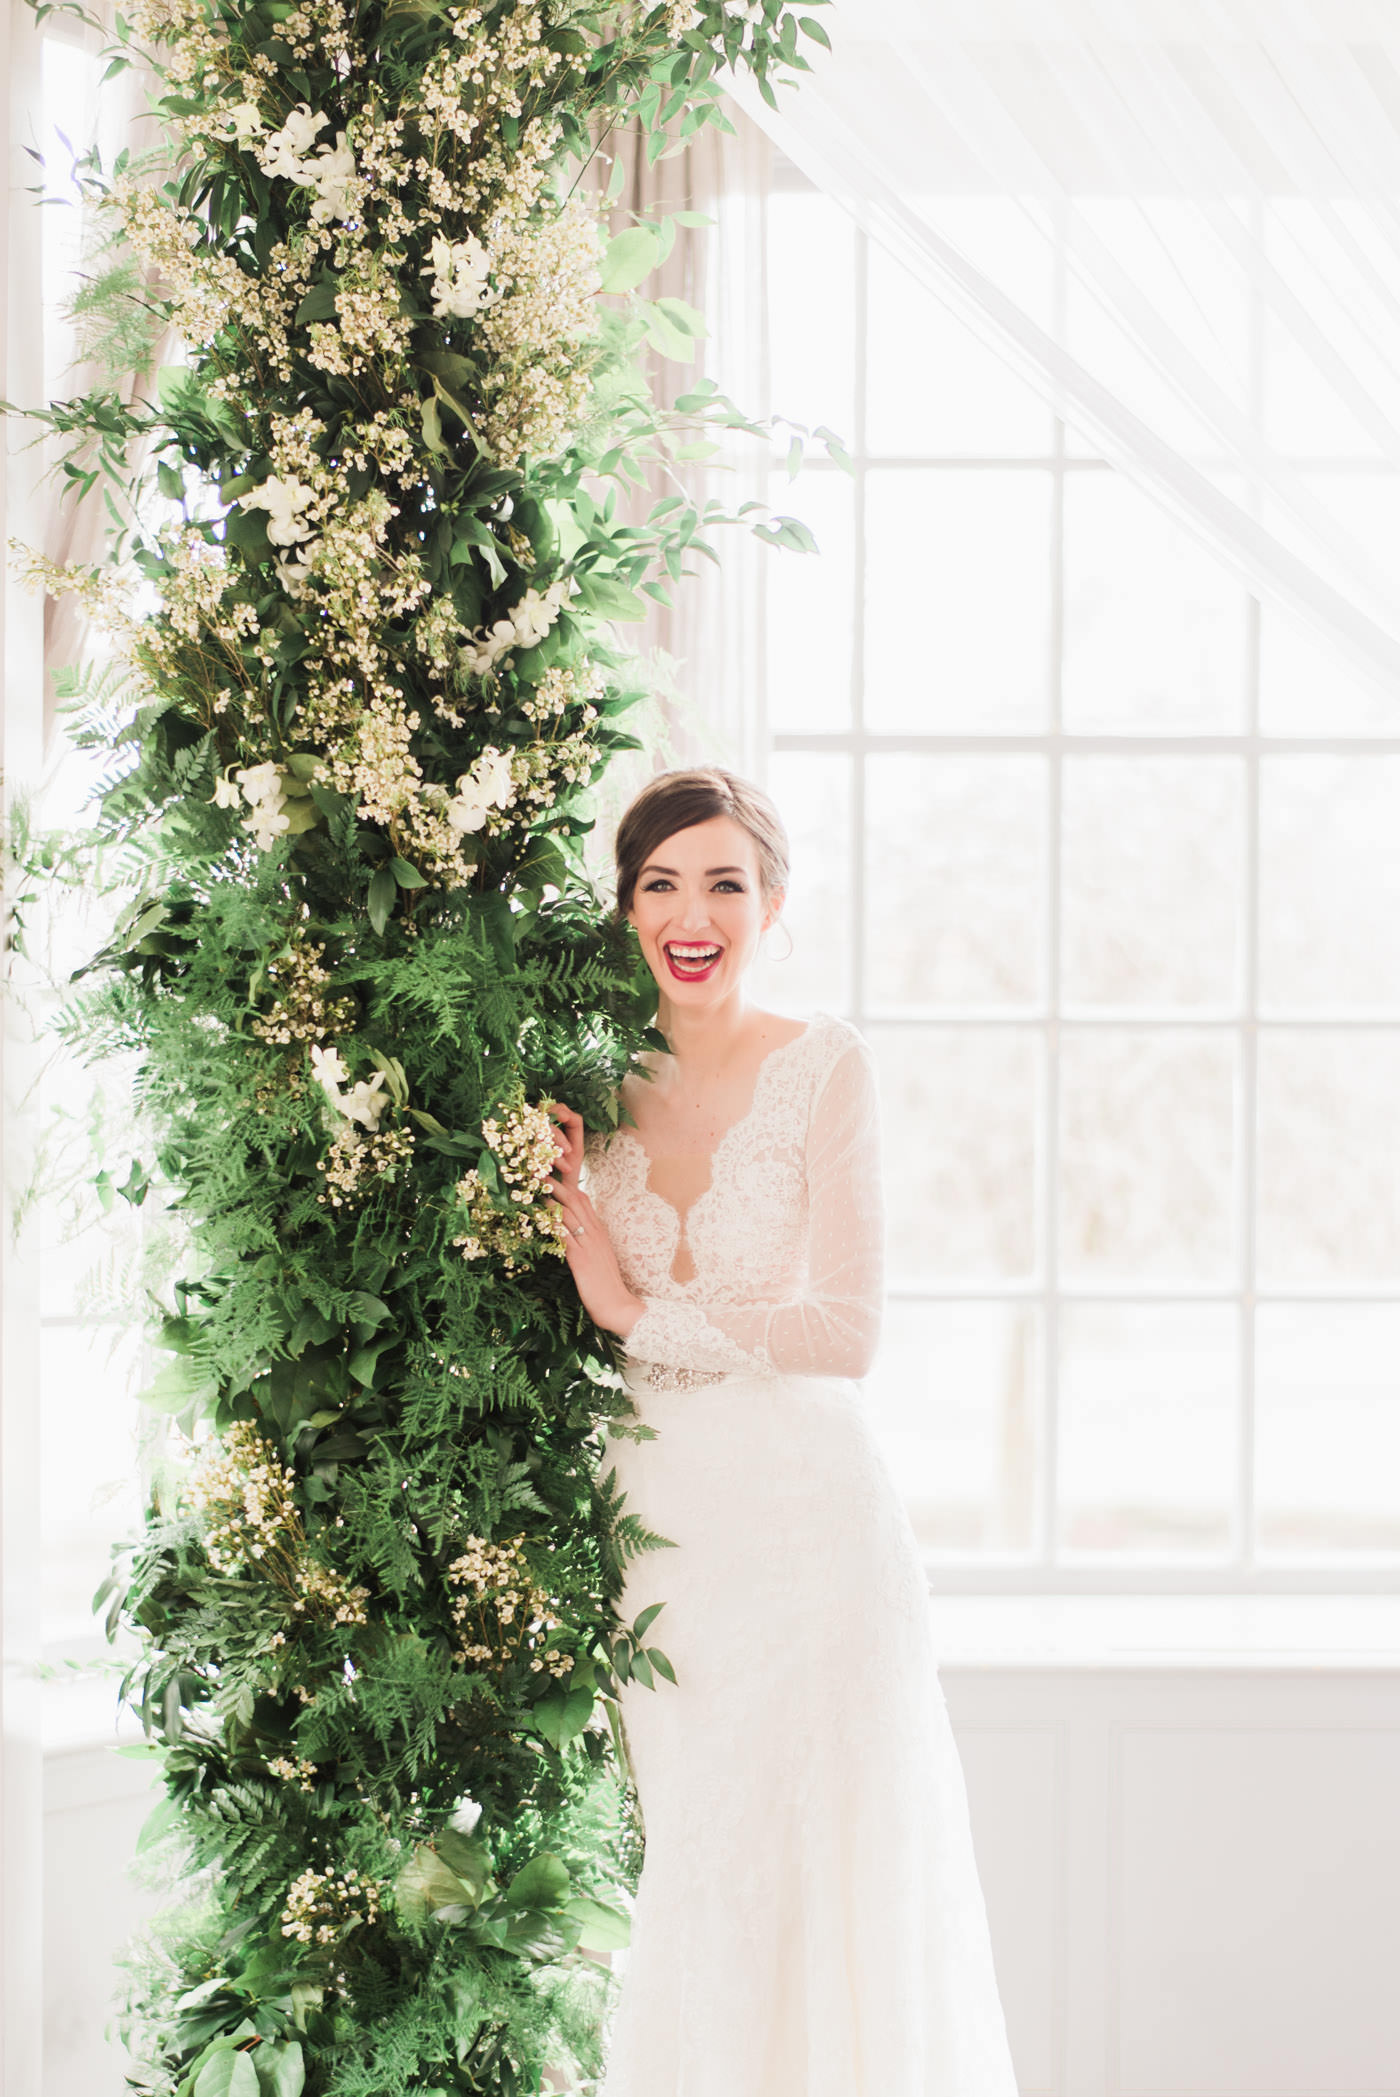 Bride laughing beside ceremony arch at Estates of Sunnybrook